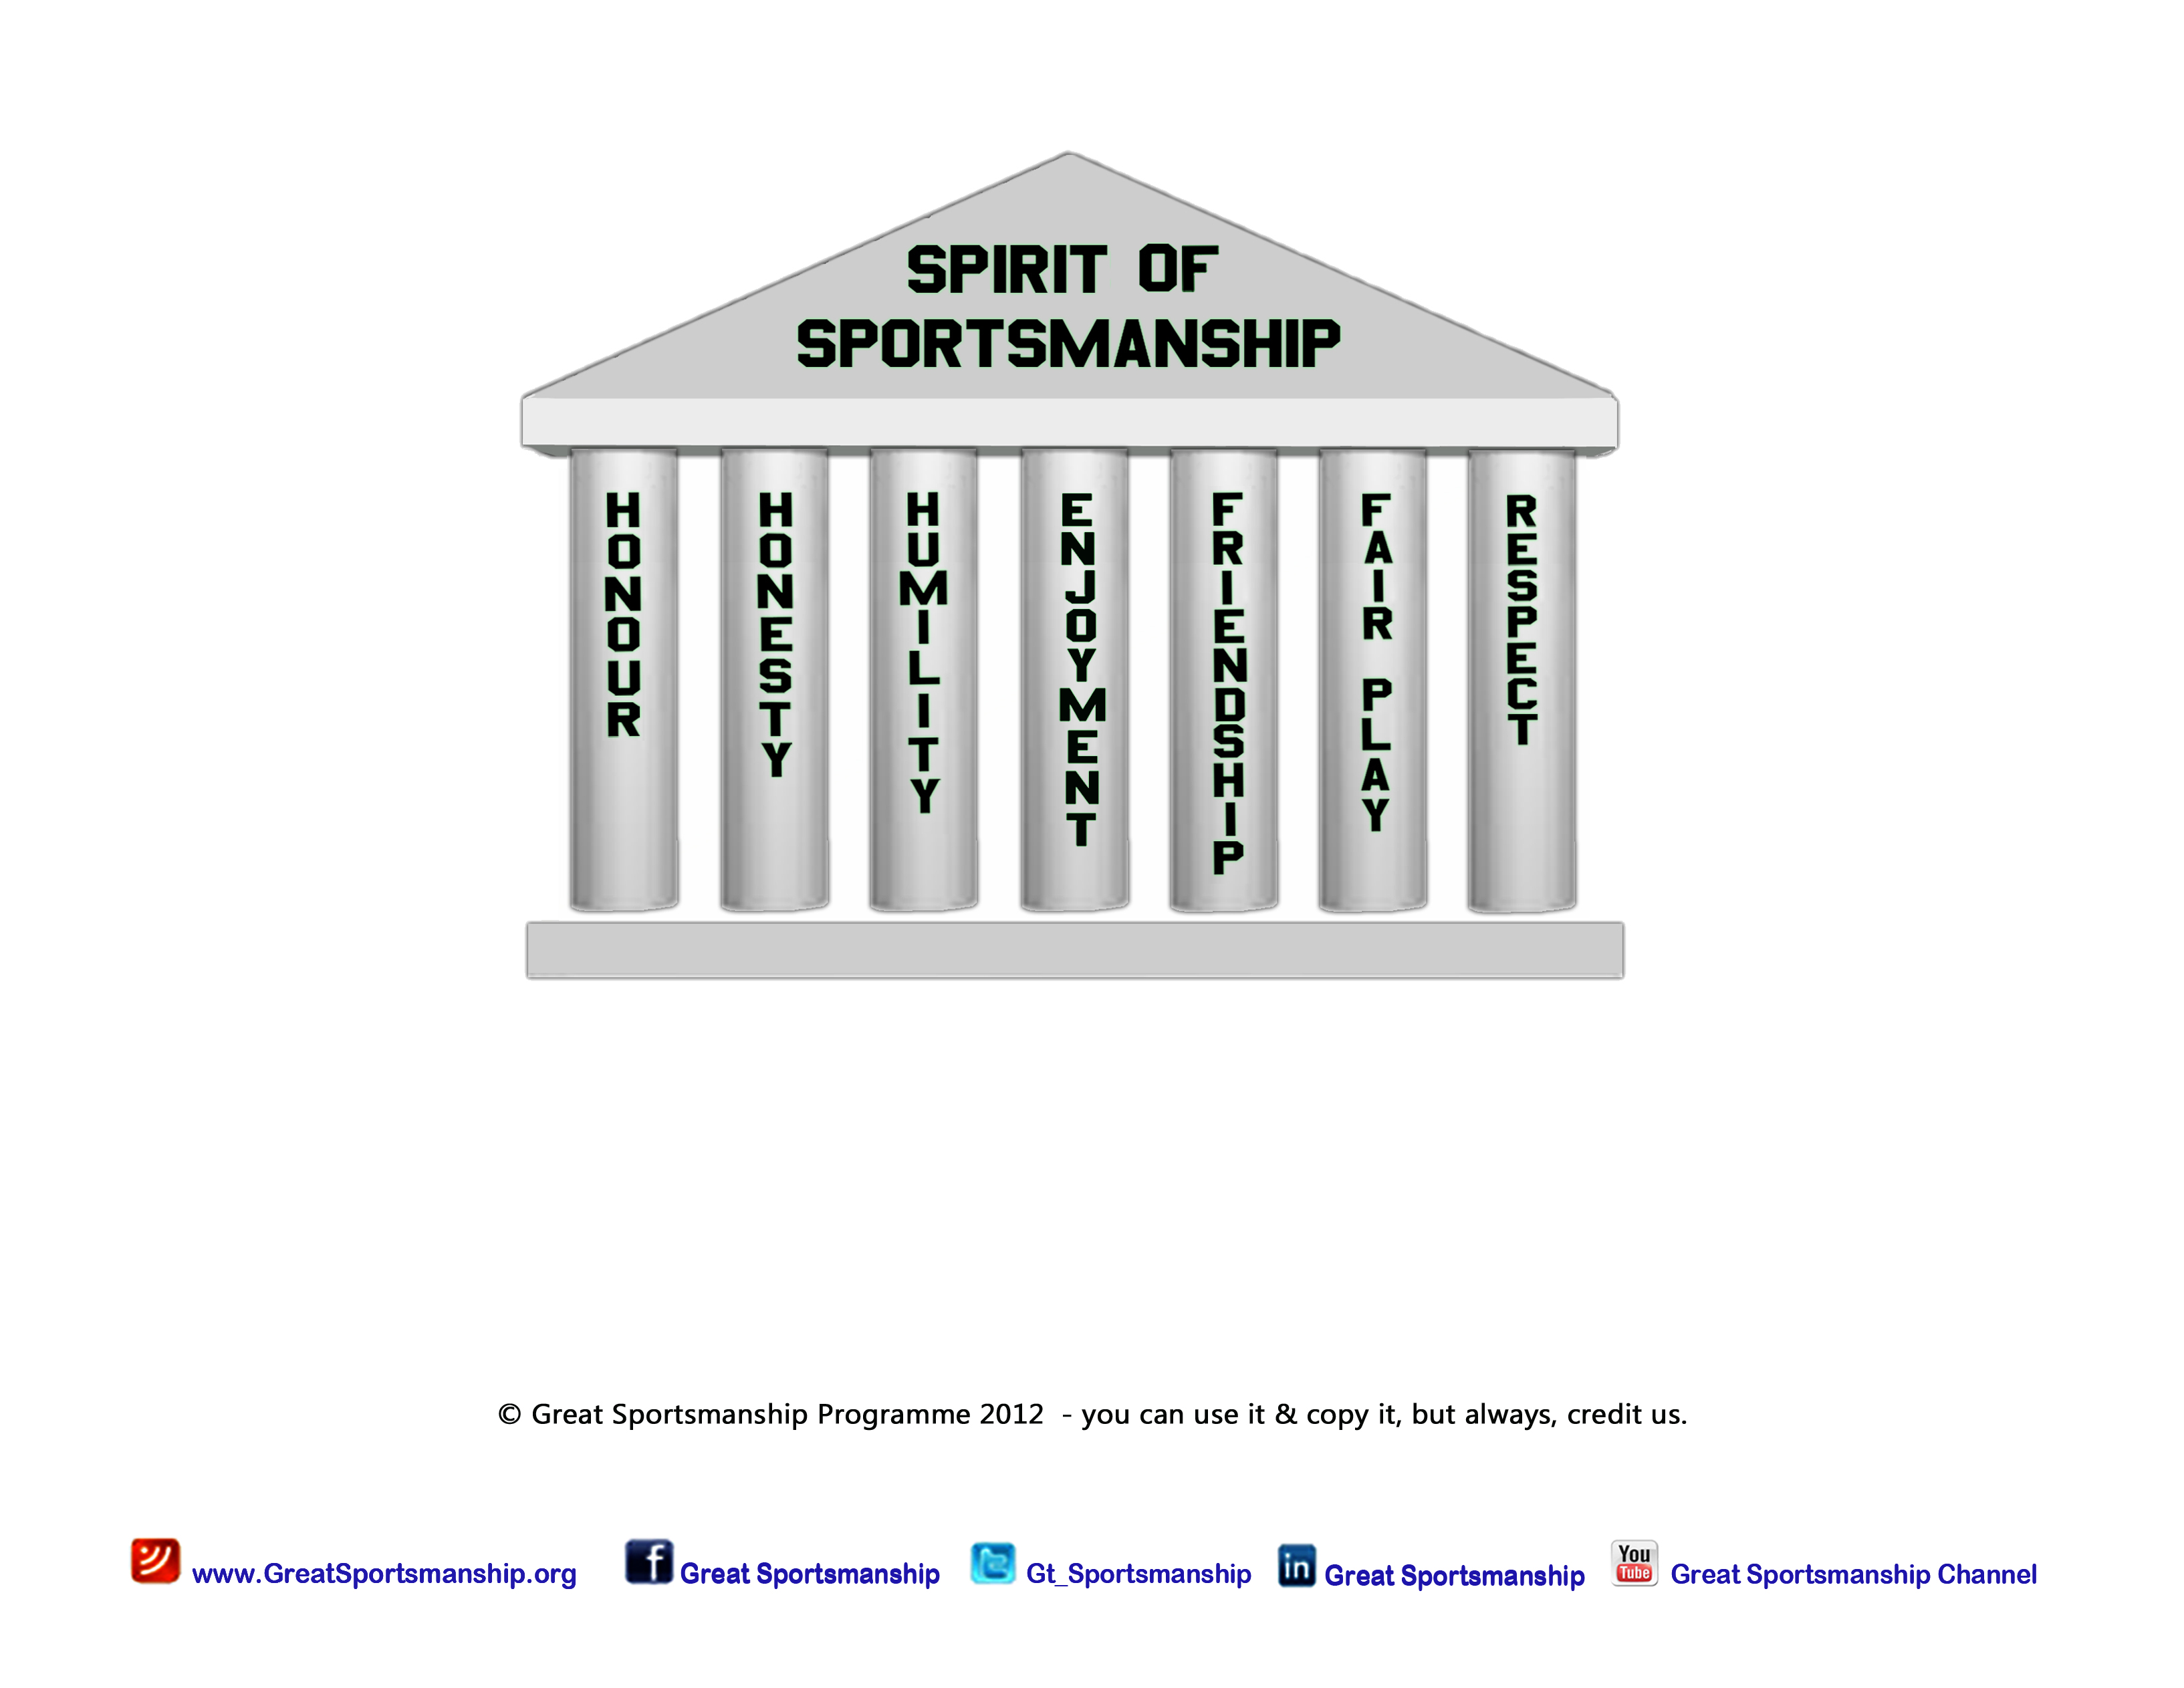 Poster showing the The 7 Pillars of Sportsmanship include Enjoyment.